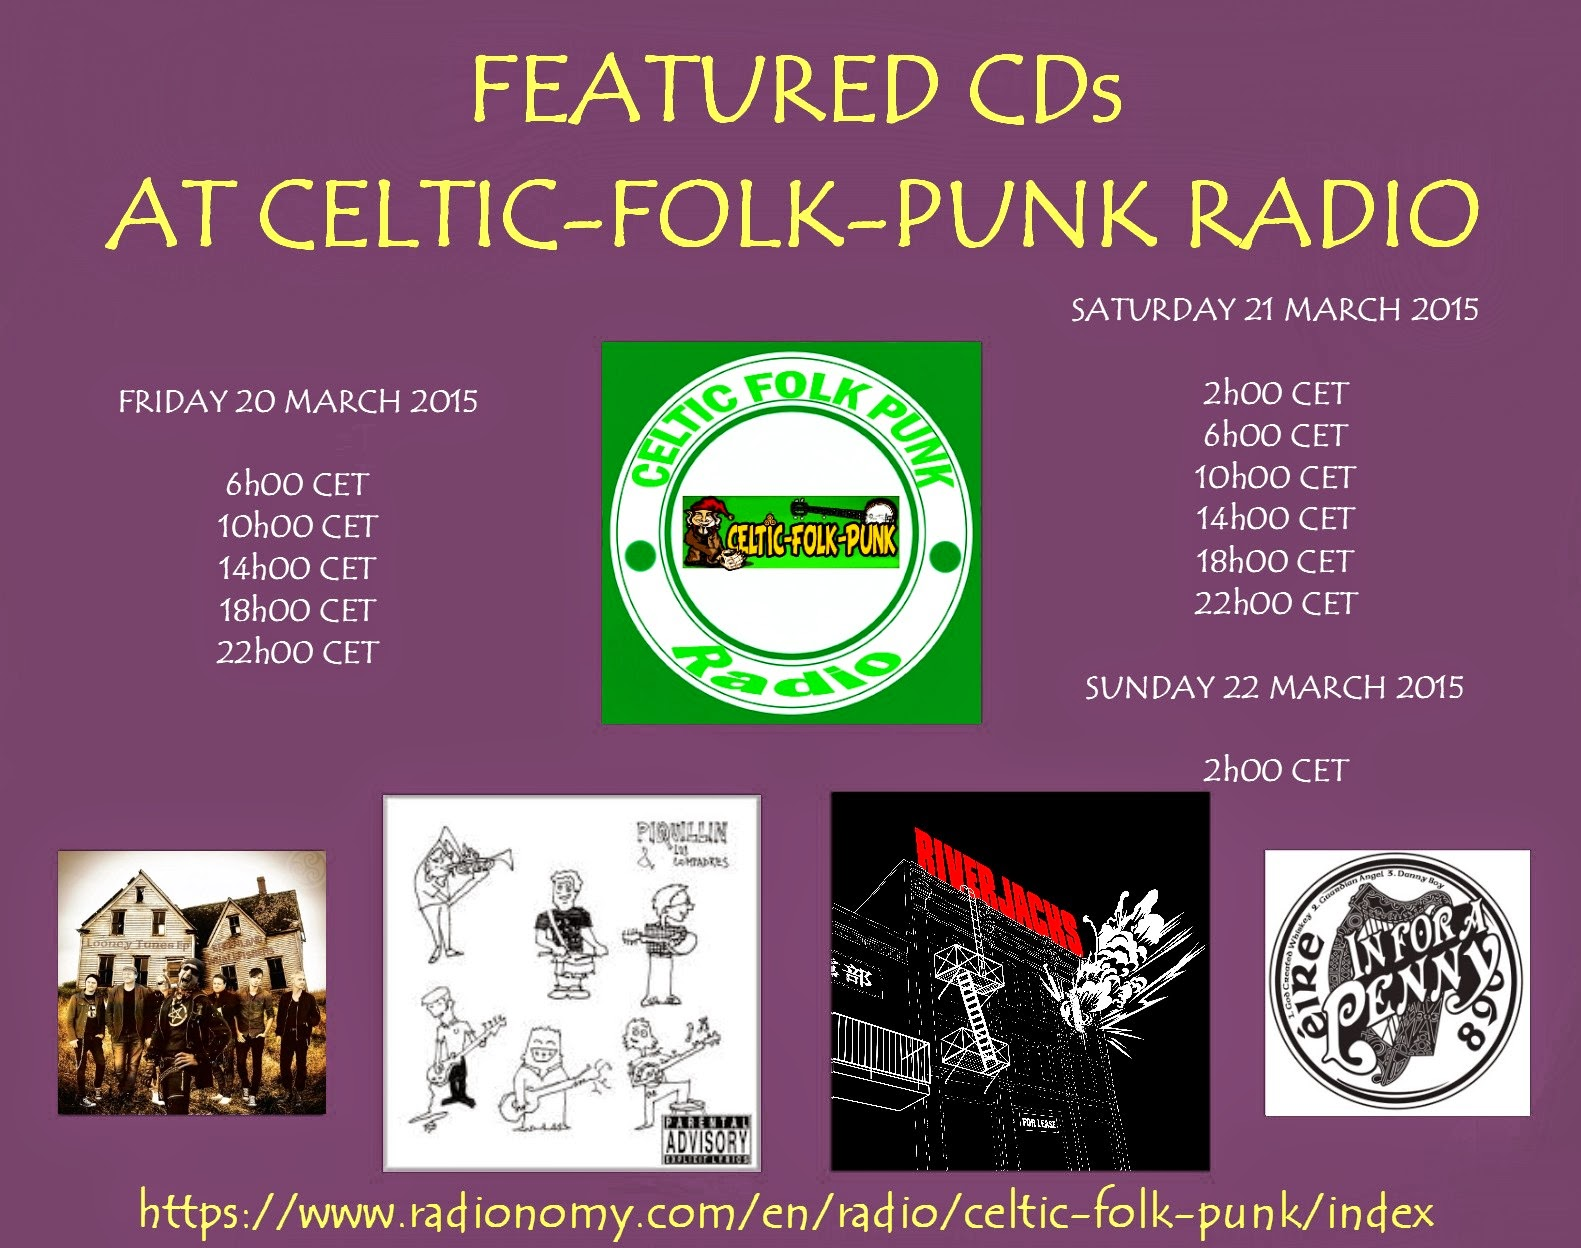 FEATURED ALBUMS AT CELTIC-FOLK-PUNK RADIO (20-21 MARCH ...